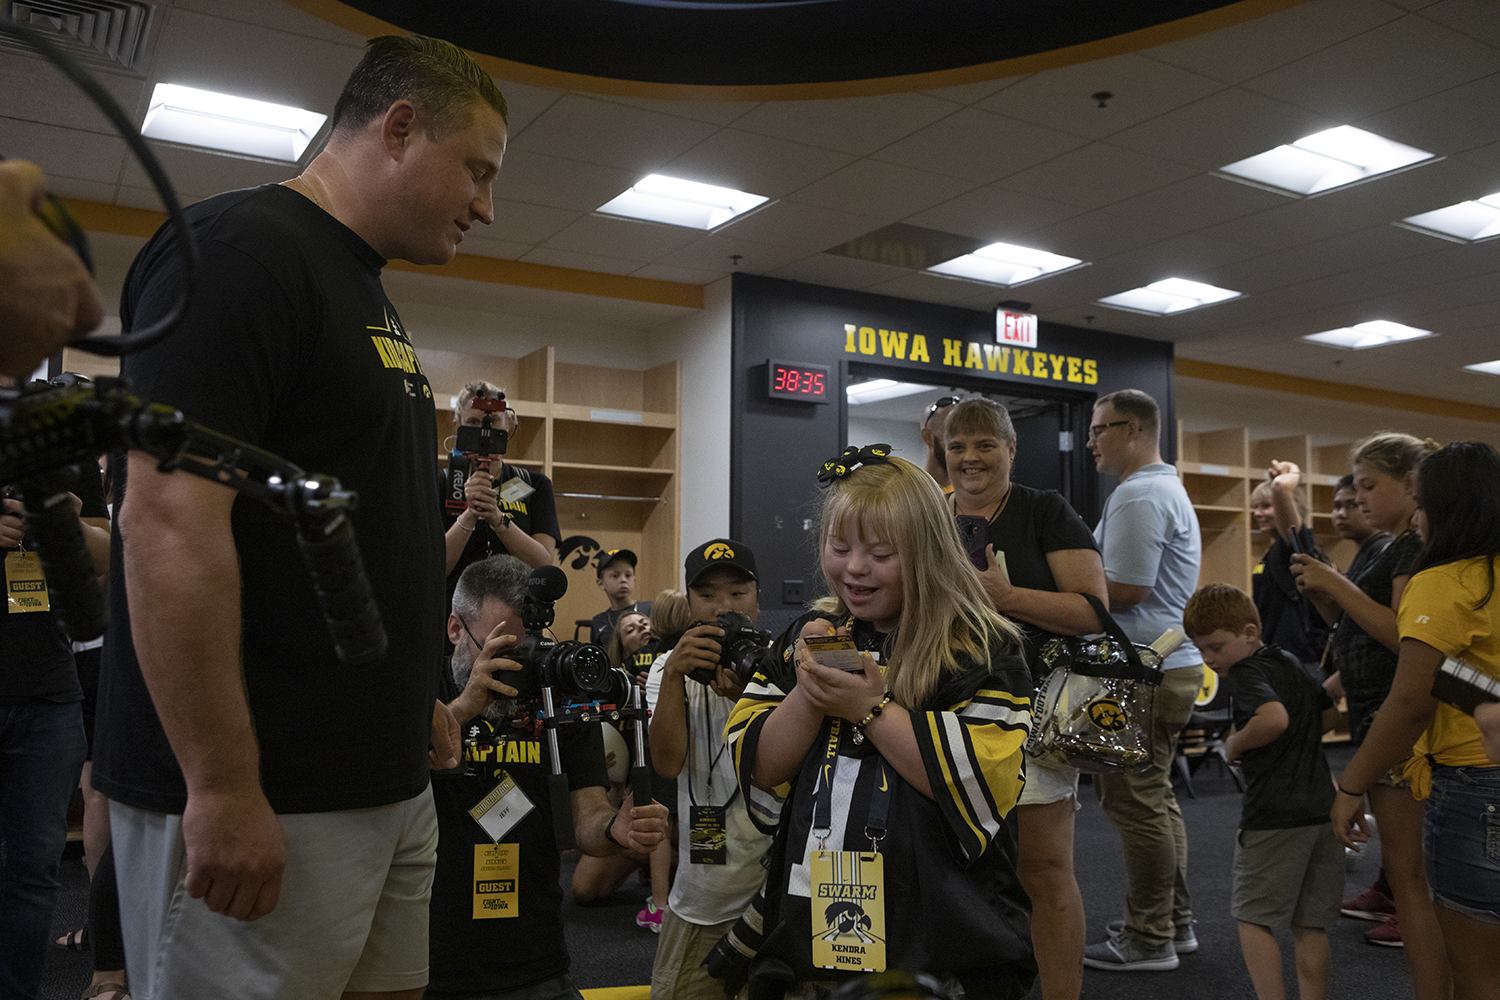 Kid Captain Kendra Hines signs a card for Hawkeye Football Offensive Coordinator Brian Ferentz in the Hawkeye football locker room at Kids Day at Kinnick on Saturday, August 10, 2019. Kids Day at Kinnick is an annual event for families to experience Iowa's football stadium, while watching preseason practice and honoring this year's Kid Captains.